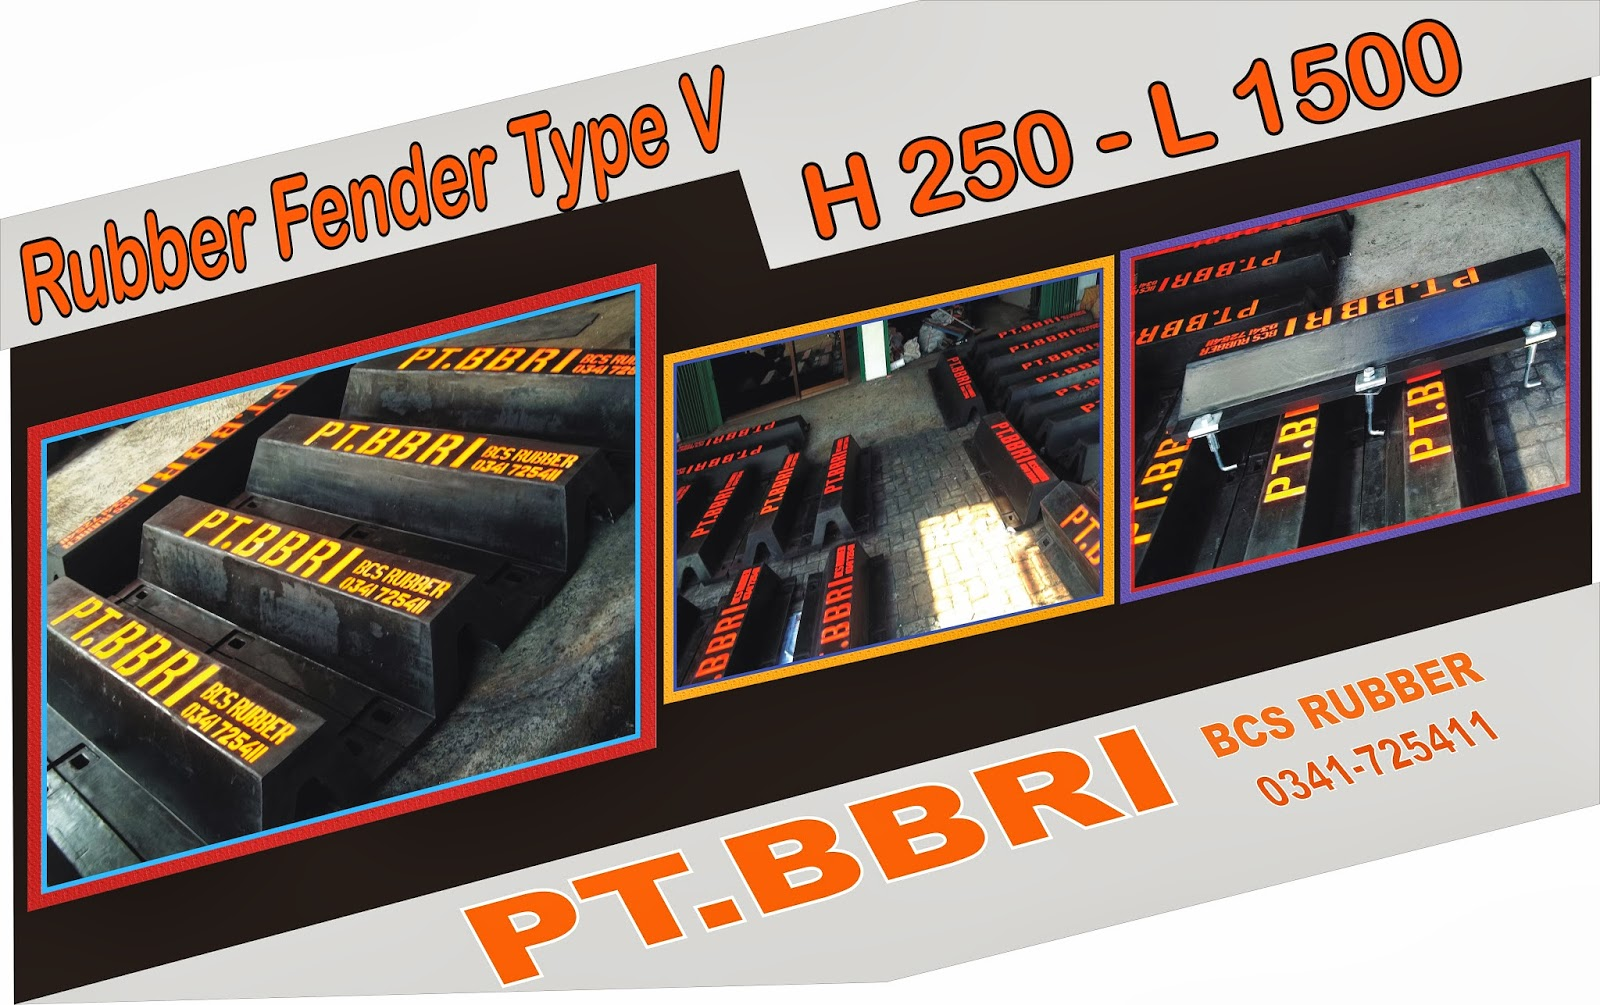 Rubber Fender BCS Rubber Industry,Rubber Fender Type V